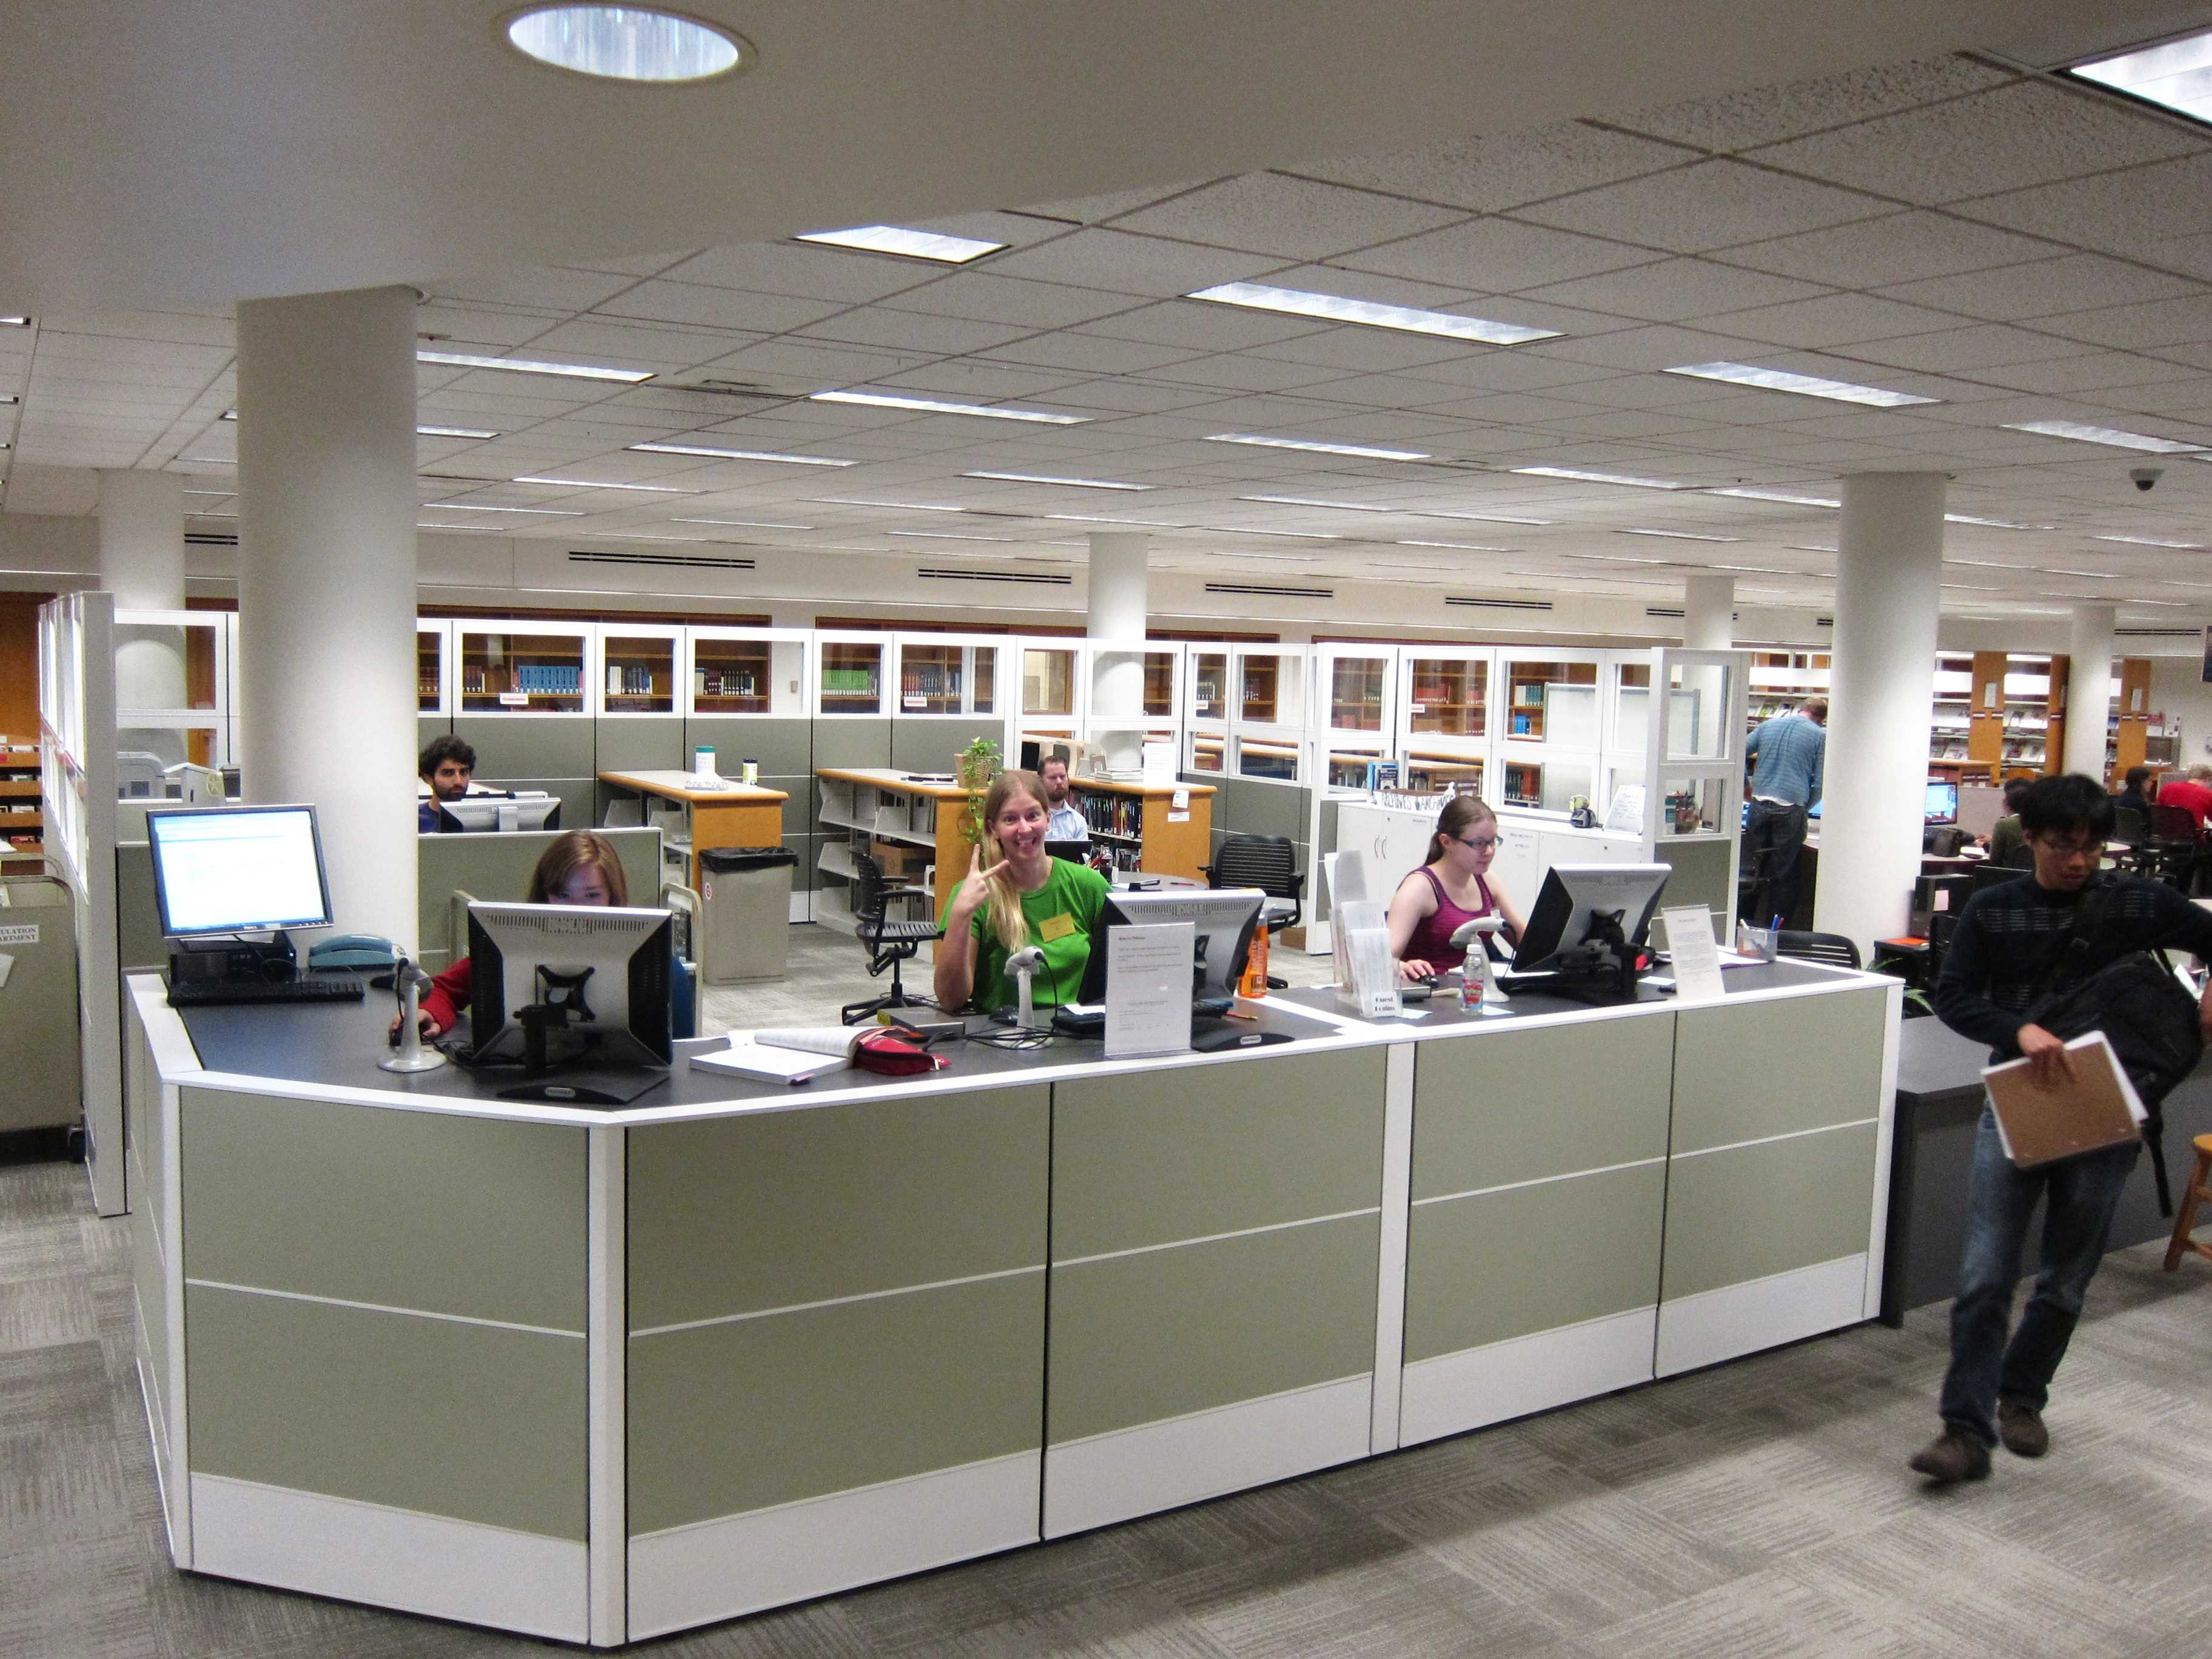 Students and staff react to library redesign